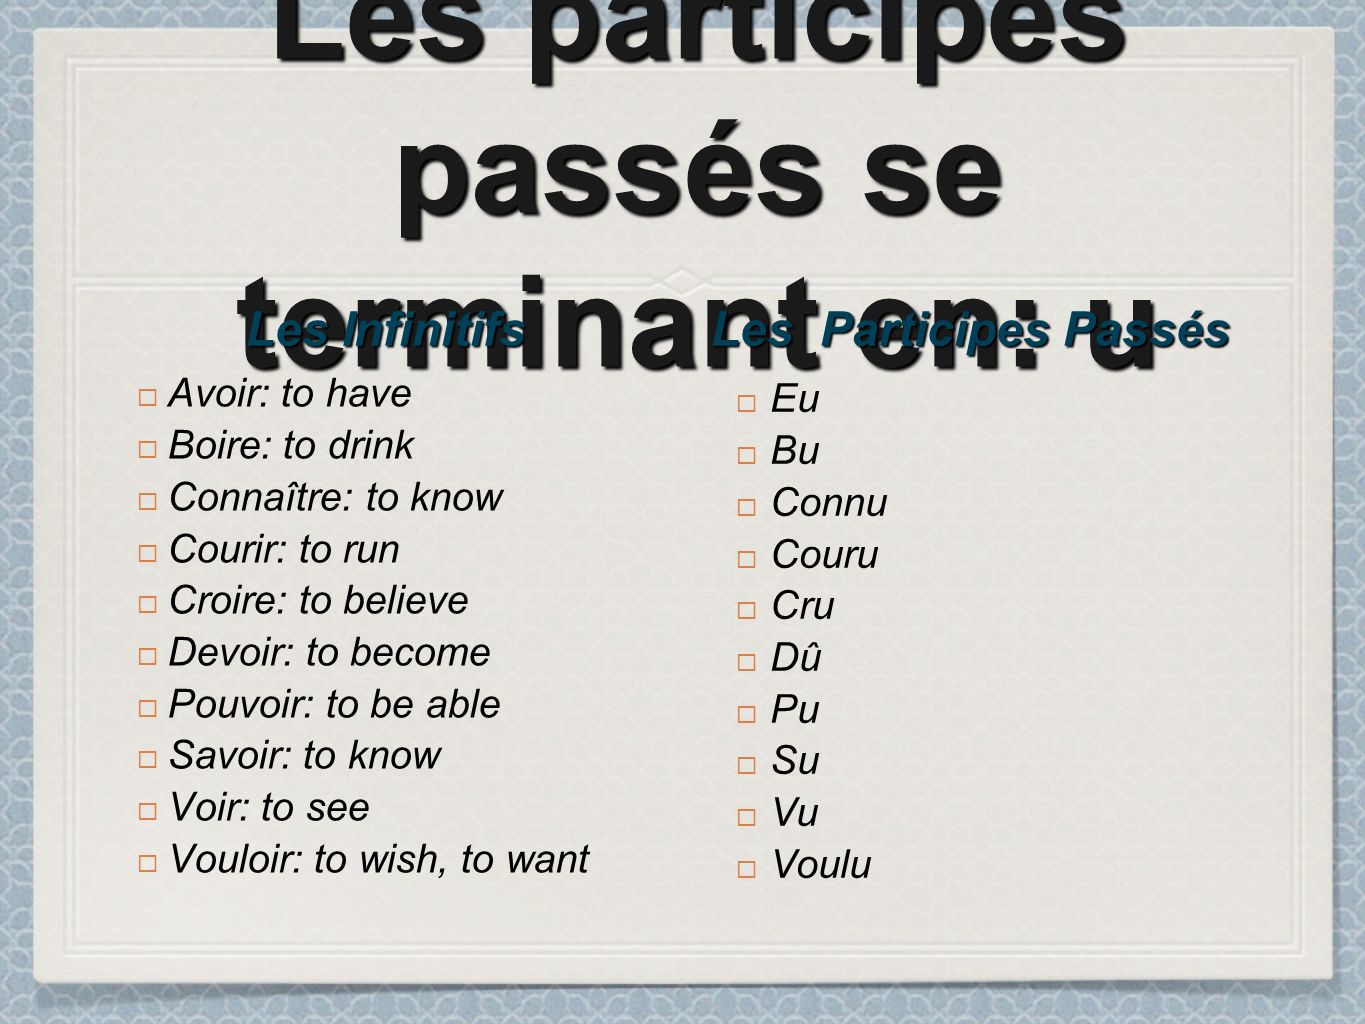 Les participes passés se terminant en: u Avoir: to have Boire: to drink Connaître: to know Courir: to run Croire: to believe Devoir: to become Pouvoir: to be able Savoir: to know Voir: to see Vouloir: to wish, to want Eu Bu Connu Couru Cru Dû Pu Su Vu Voulu Les Participes Passés Les Infinitifs